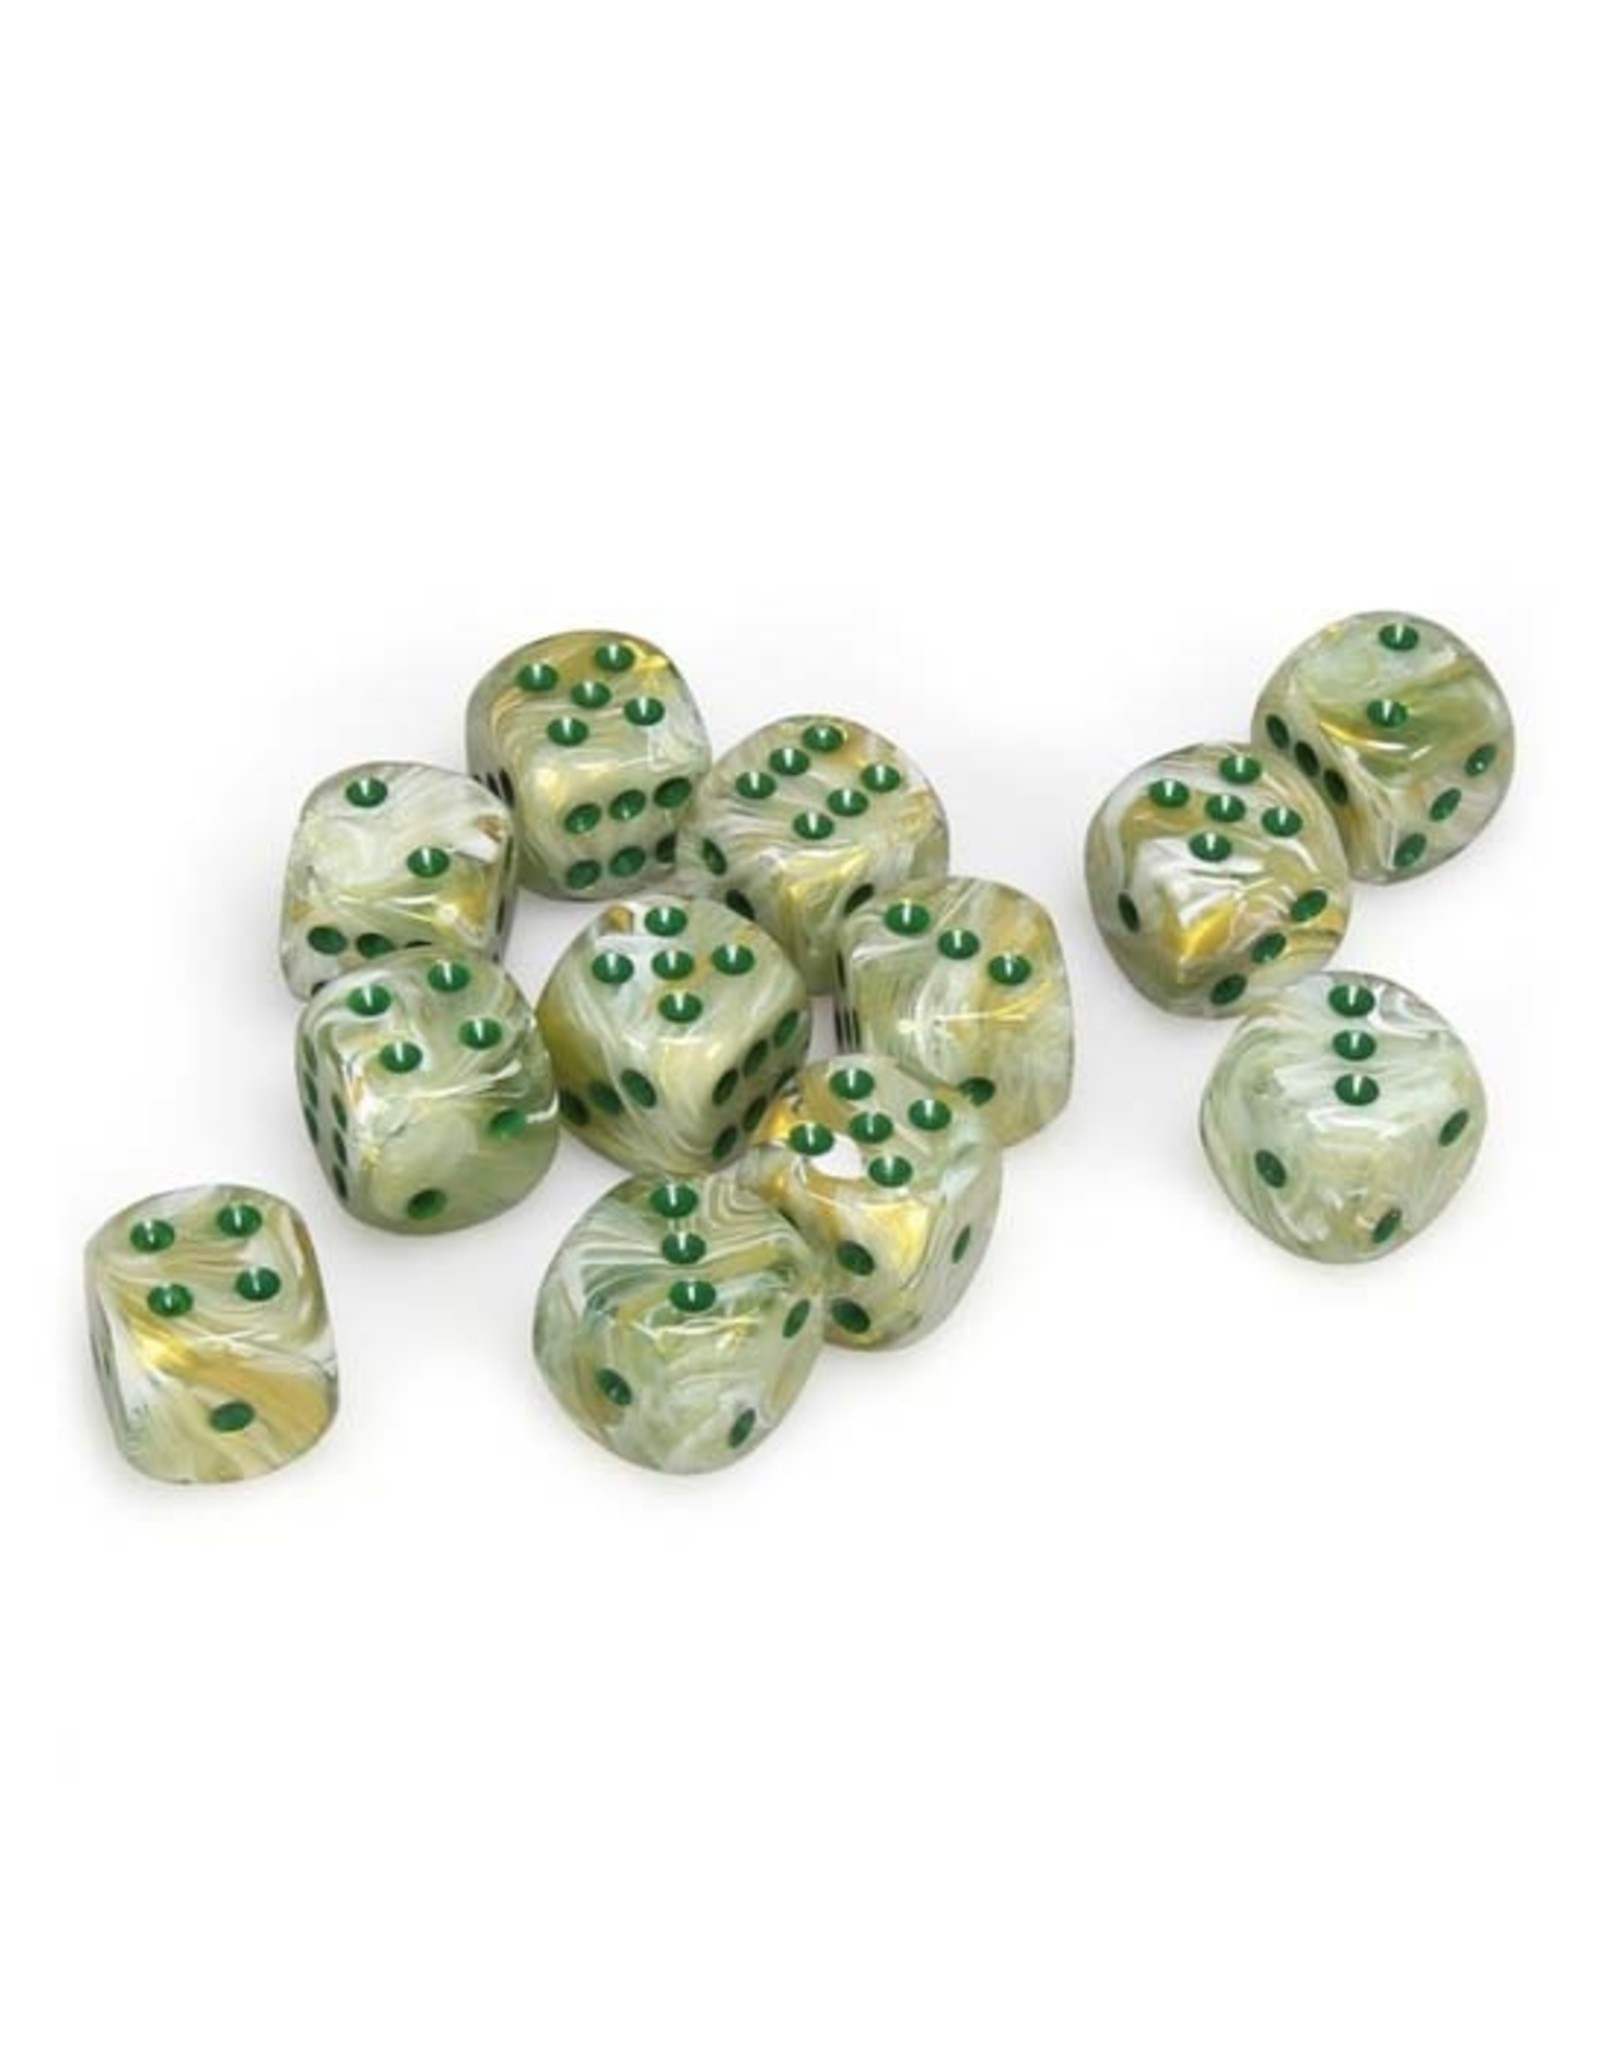 Chessex Chessex: 16mm D6 - Marble - Green w/ Dark Green